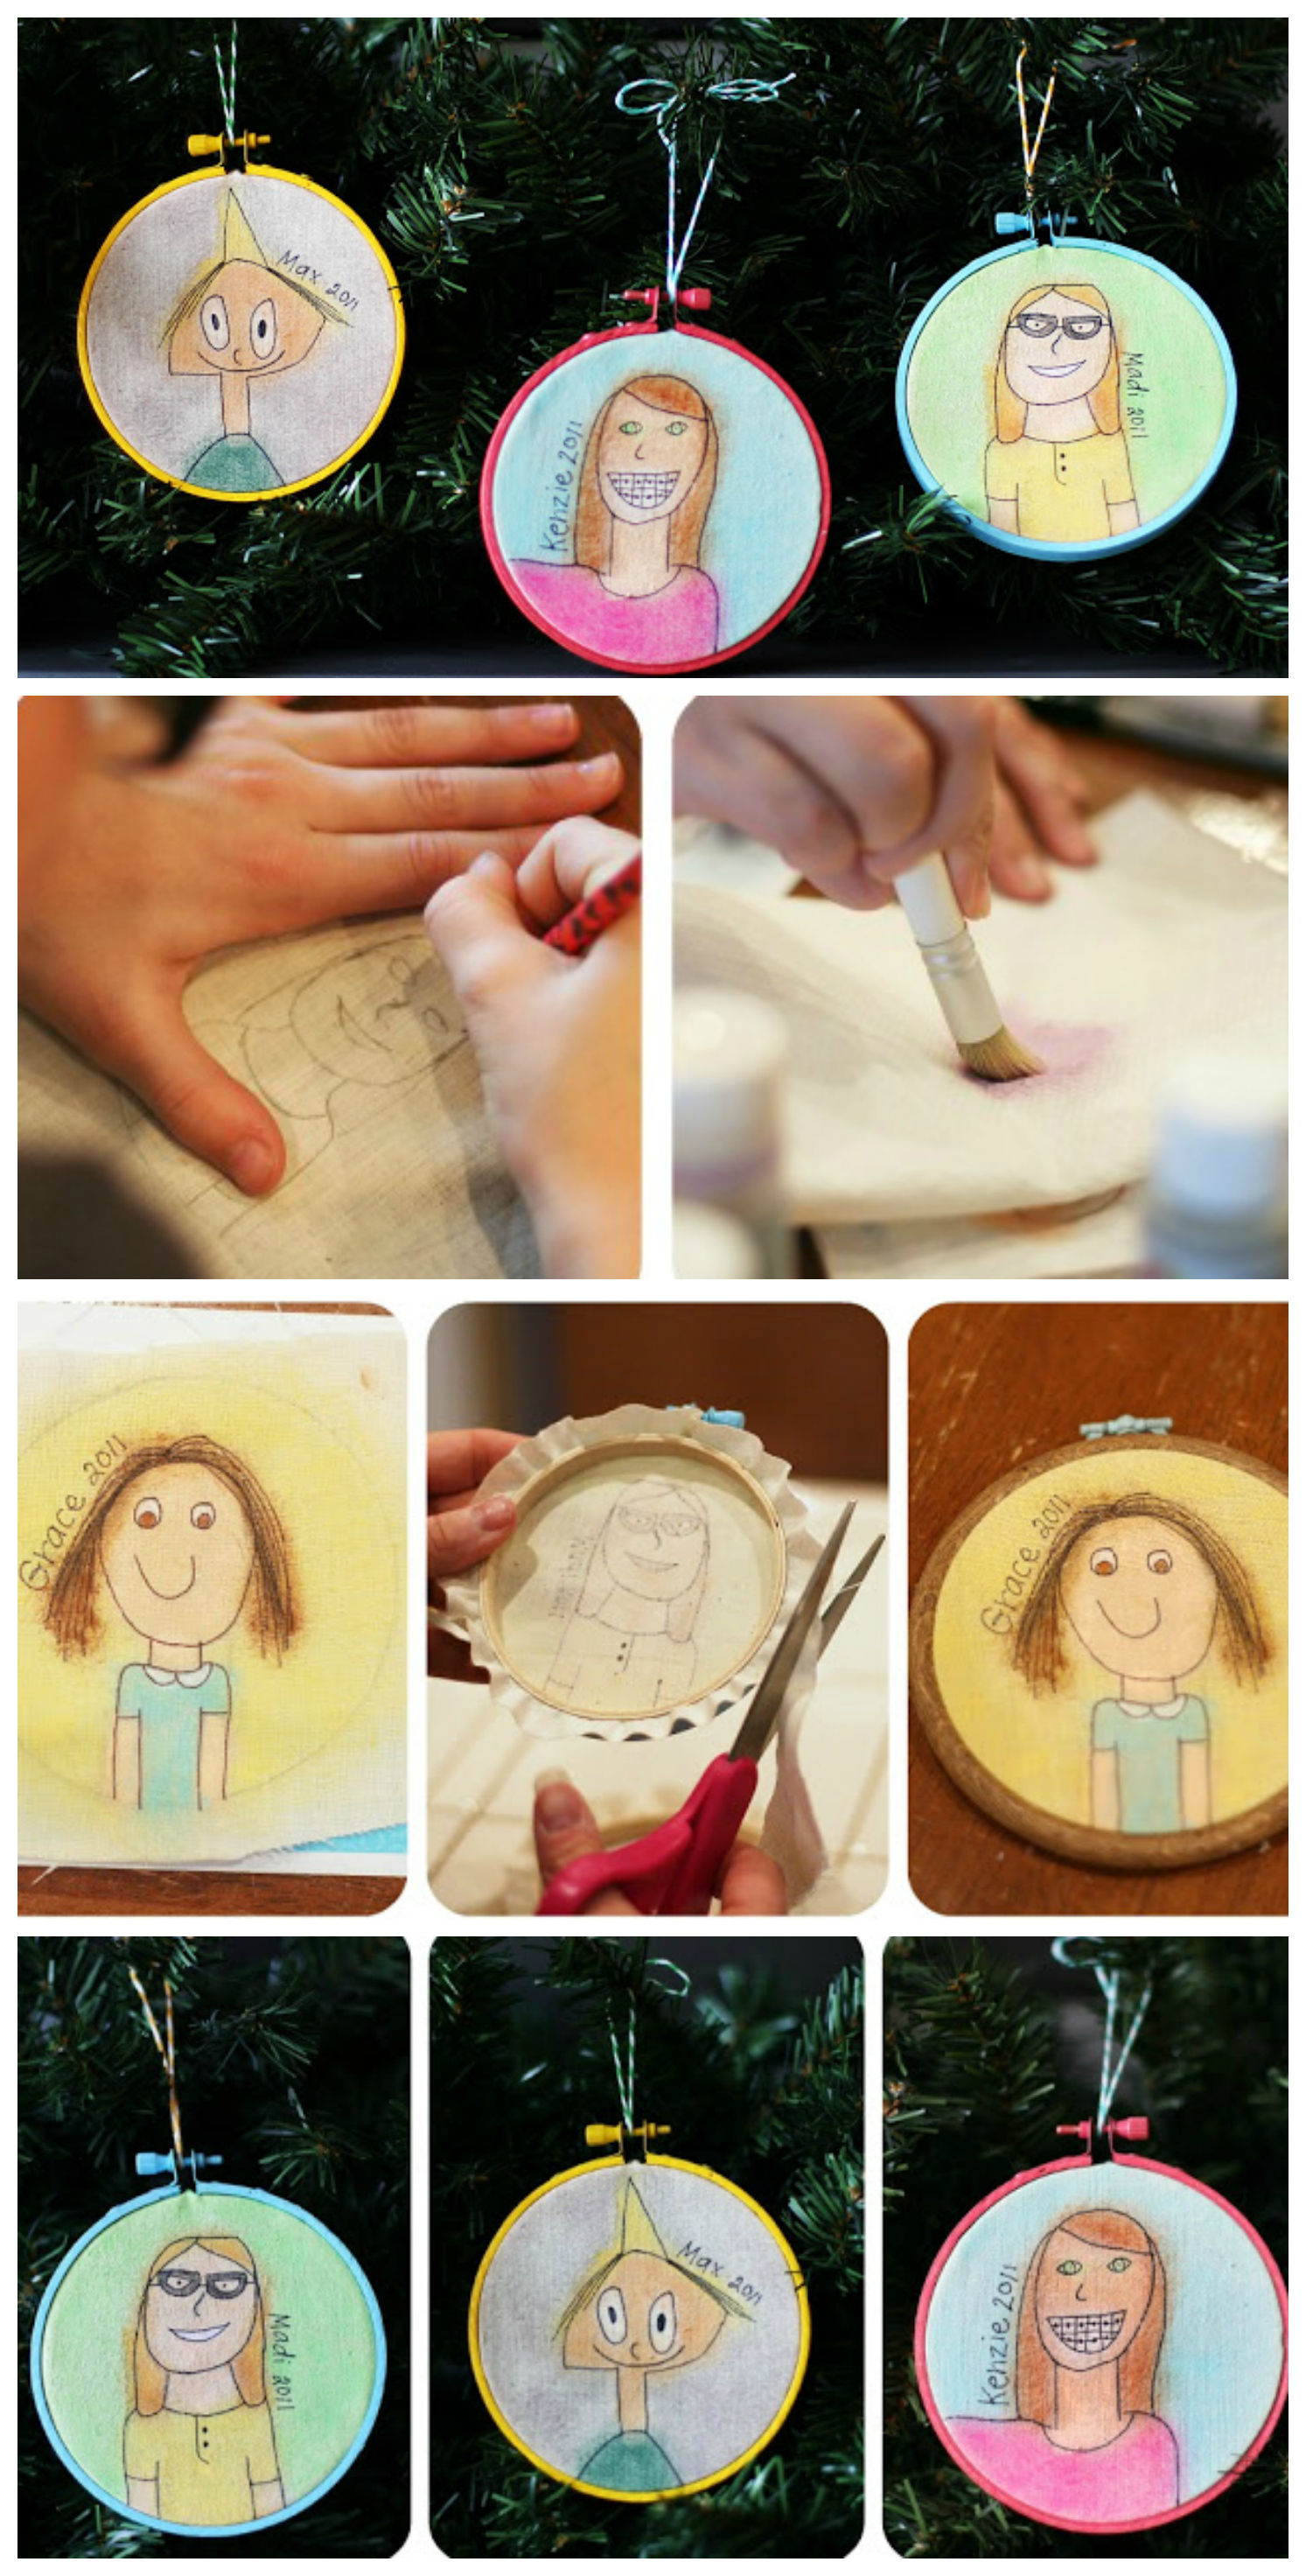 Self Portrait Ornaments The Kids Can Make | The cutest ornaments ever!